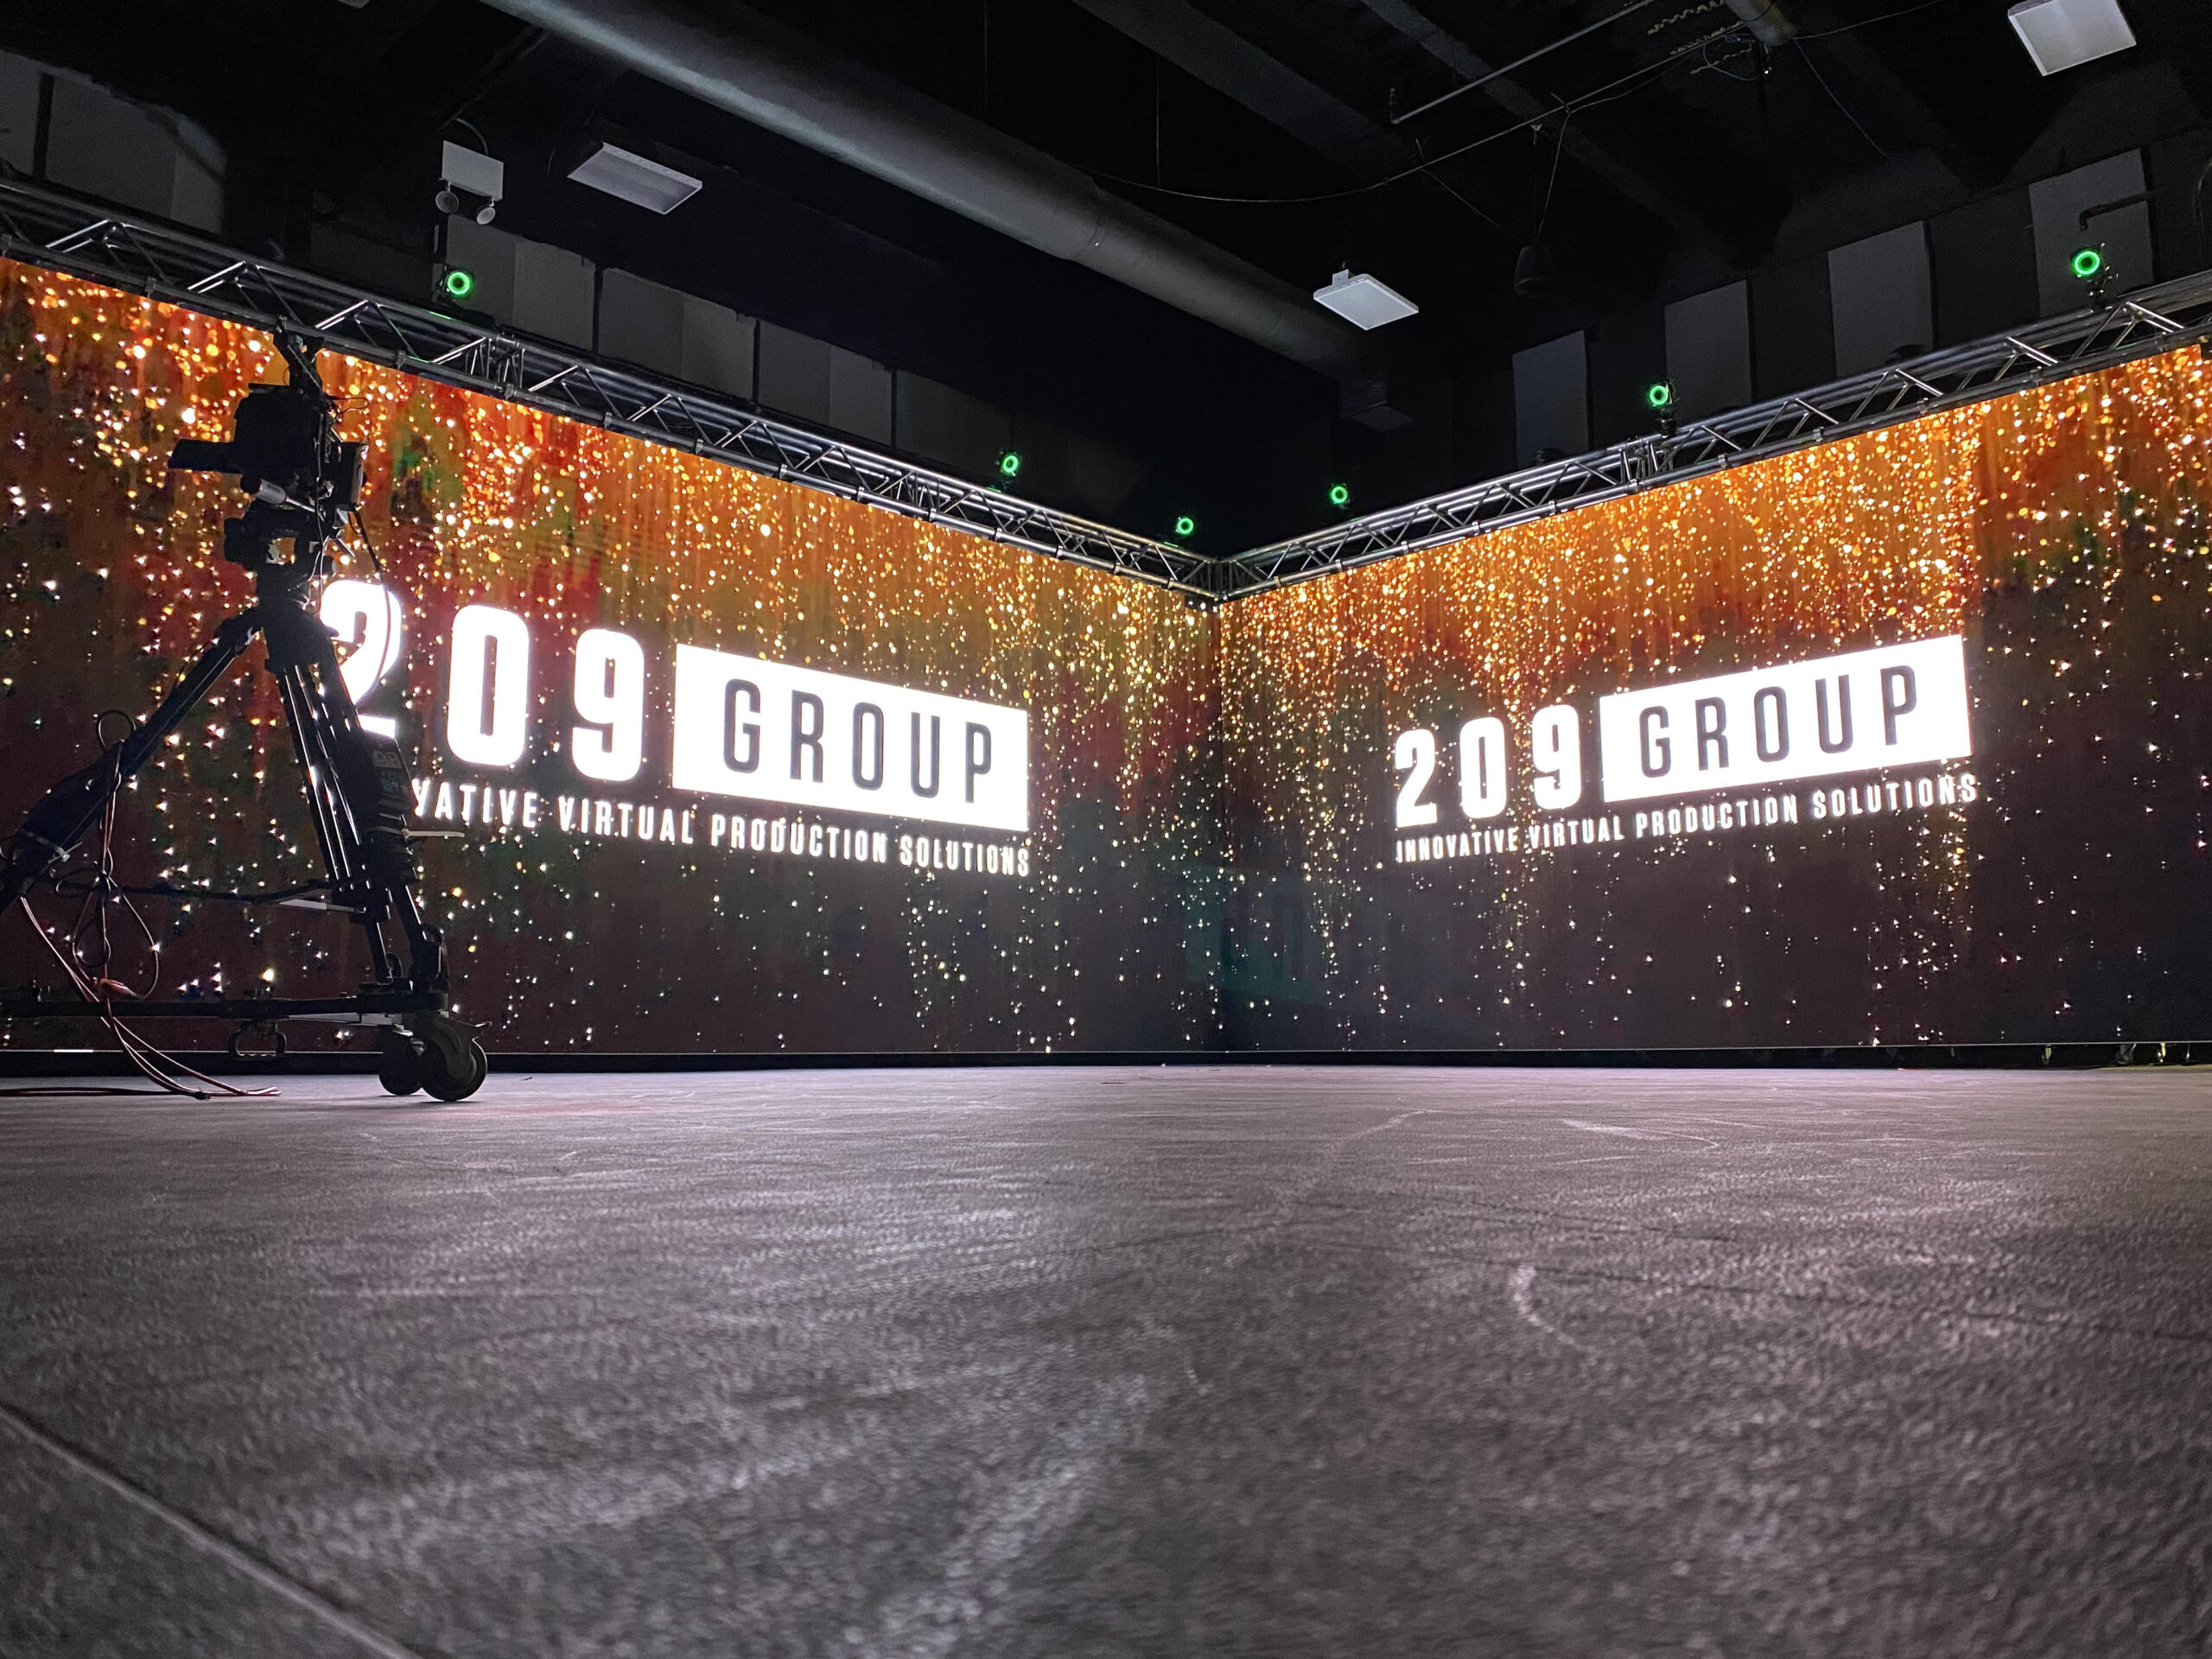 209 group Launches Virtual Production Services Team